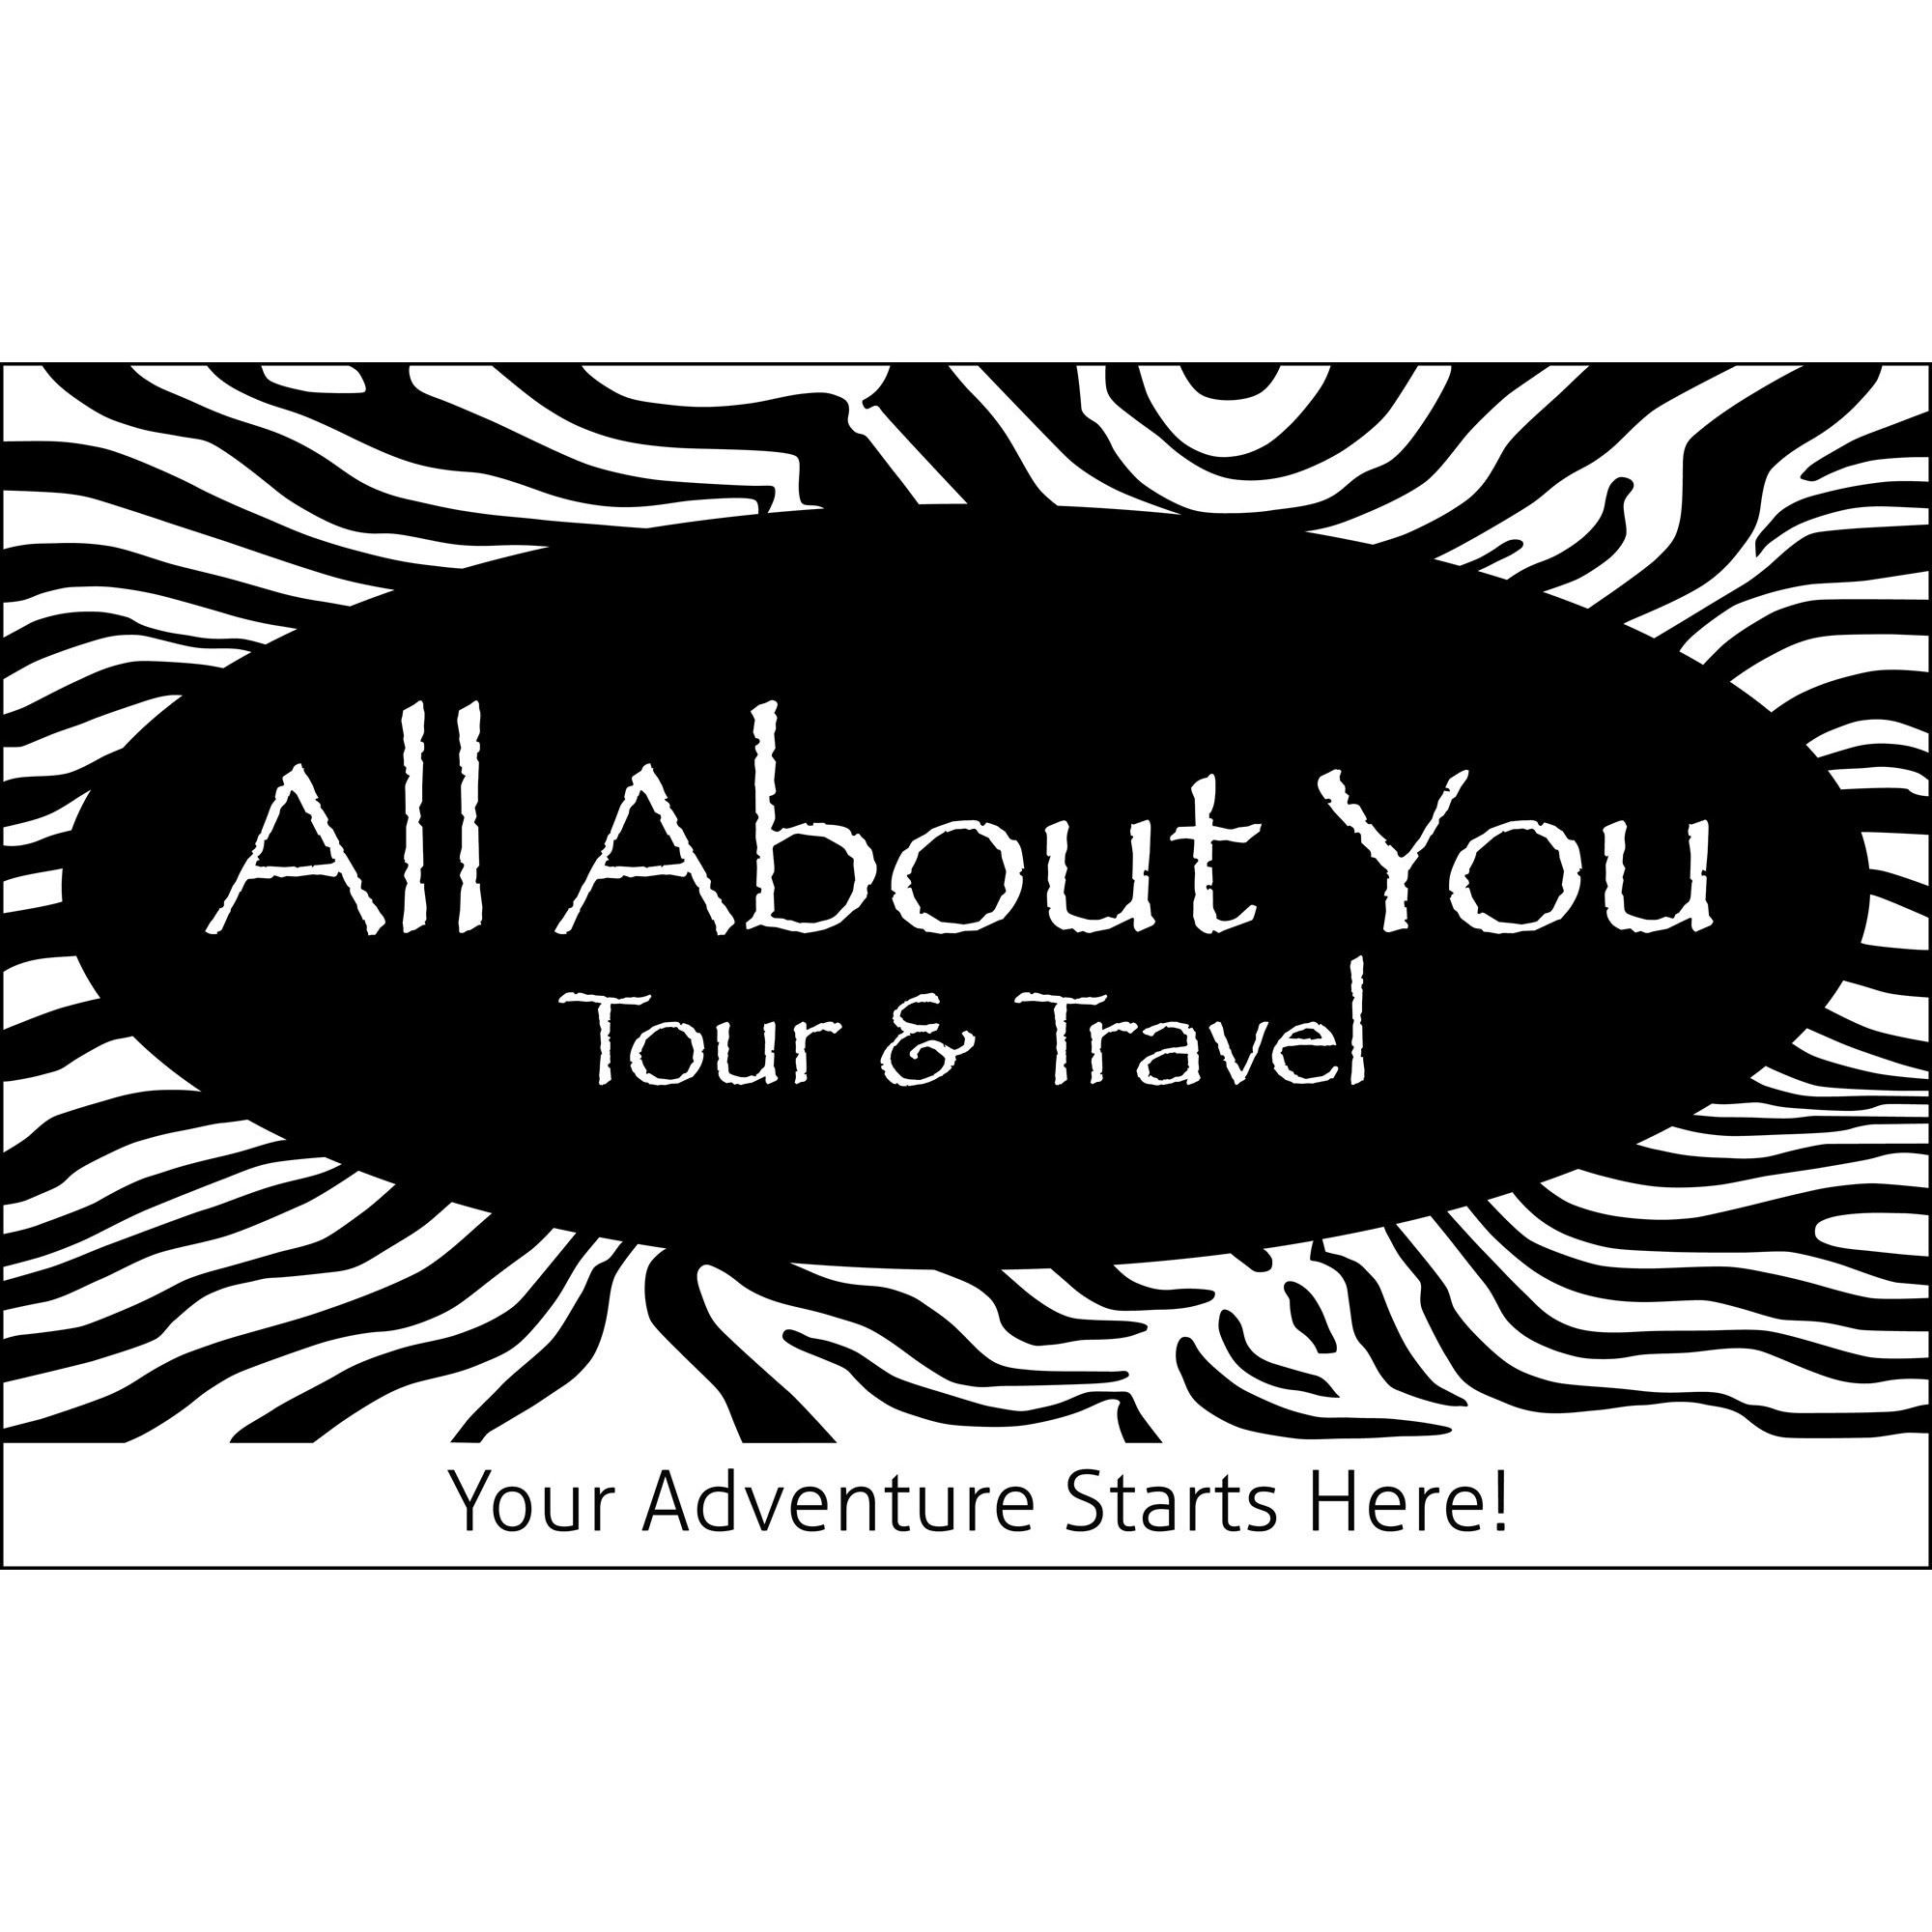 All About You Tour & Travel